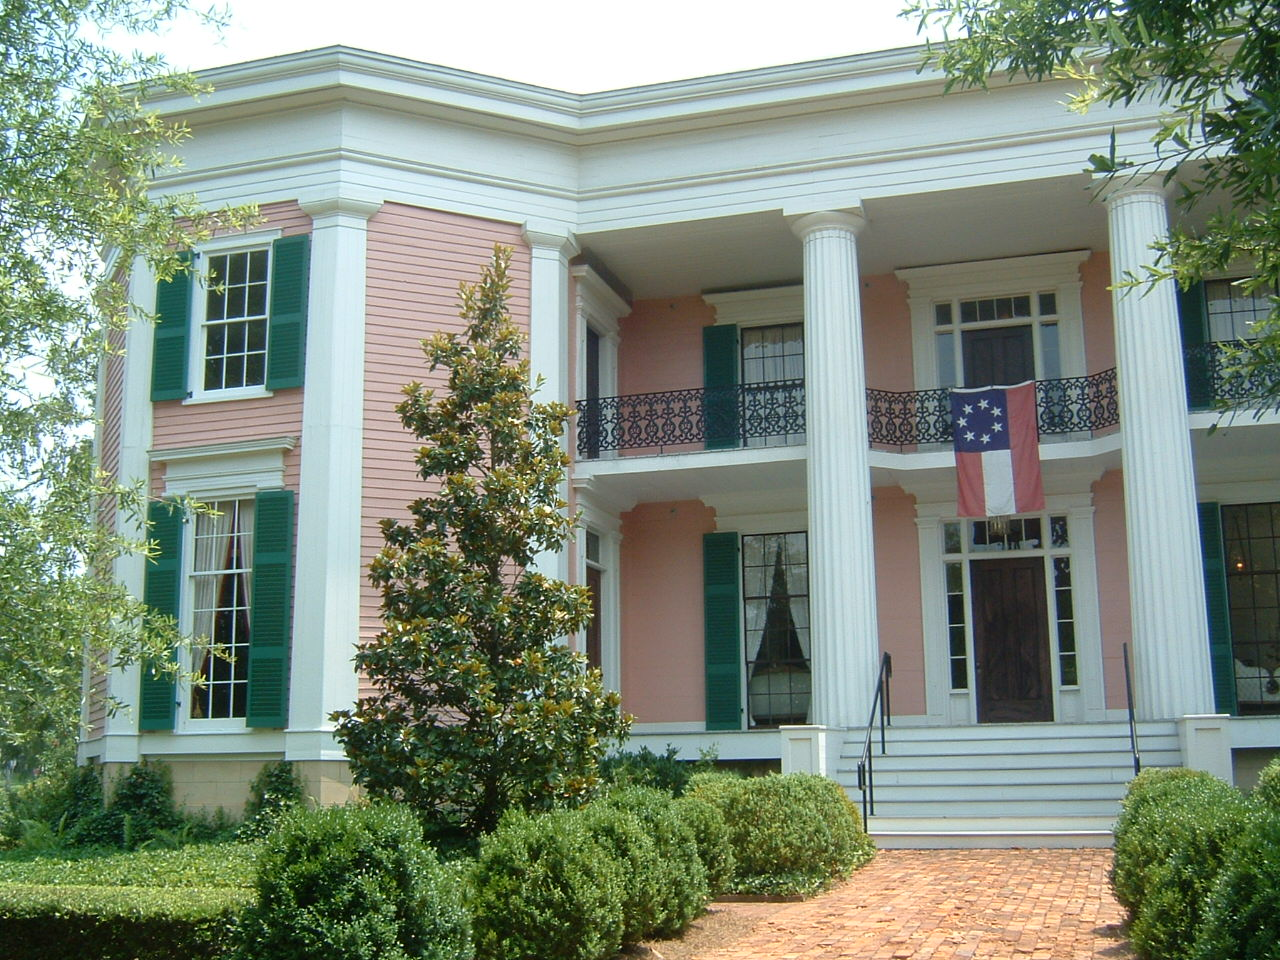 T. R. R. Cobb House Athens Georgia 2011 ghosts haunted